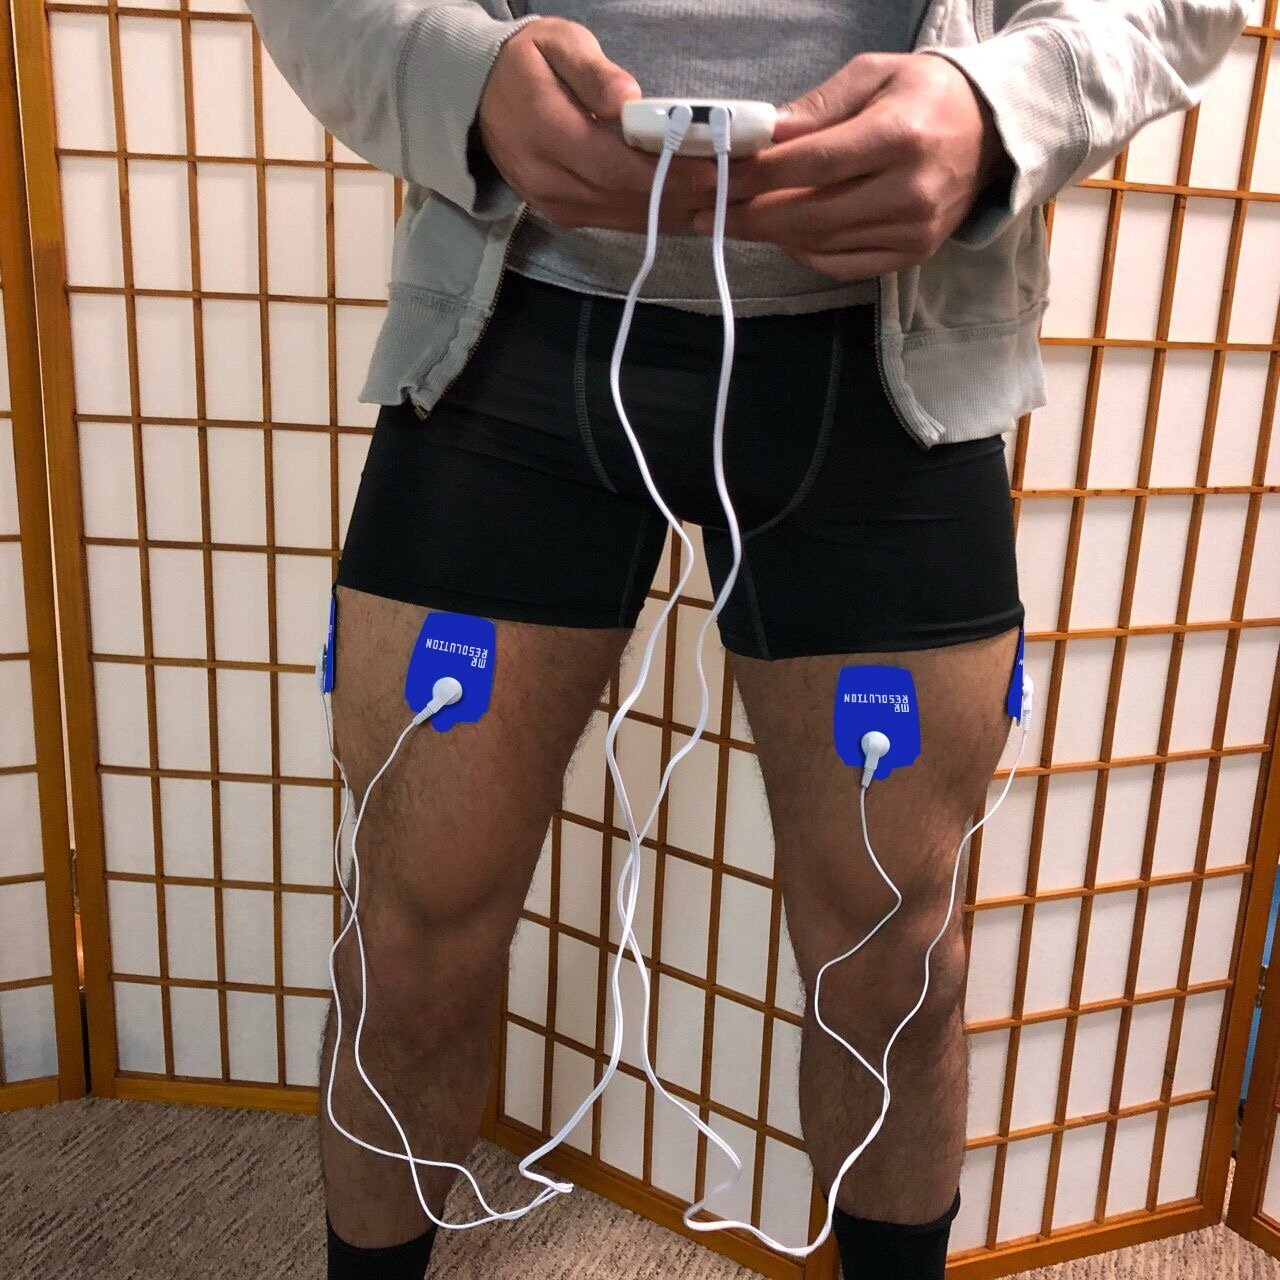 MR Resolution Electro-Therapy Unit